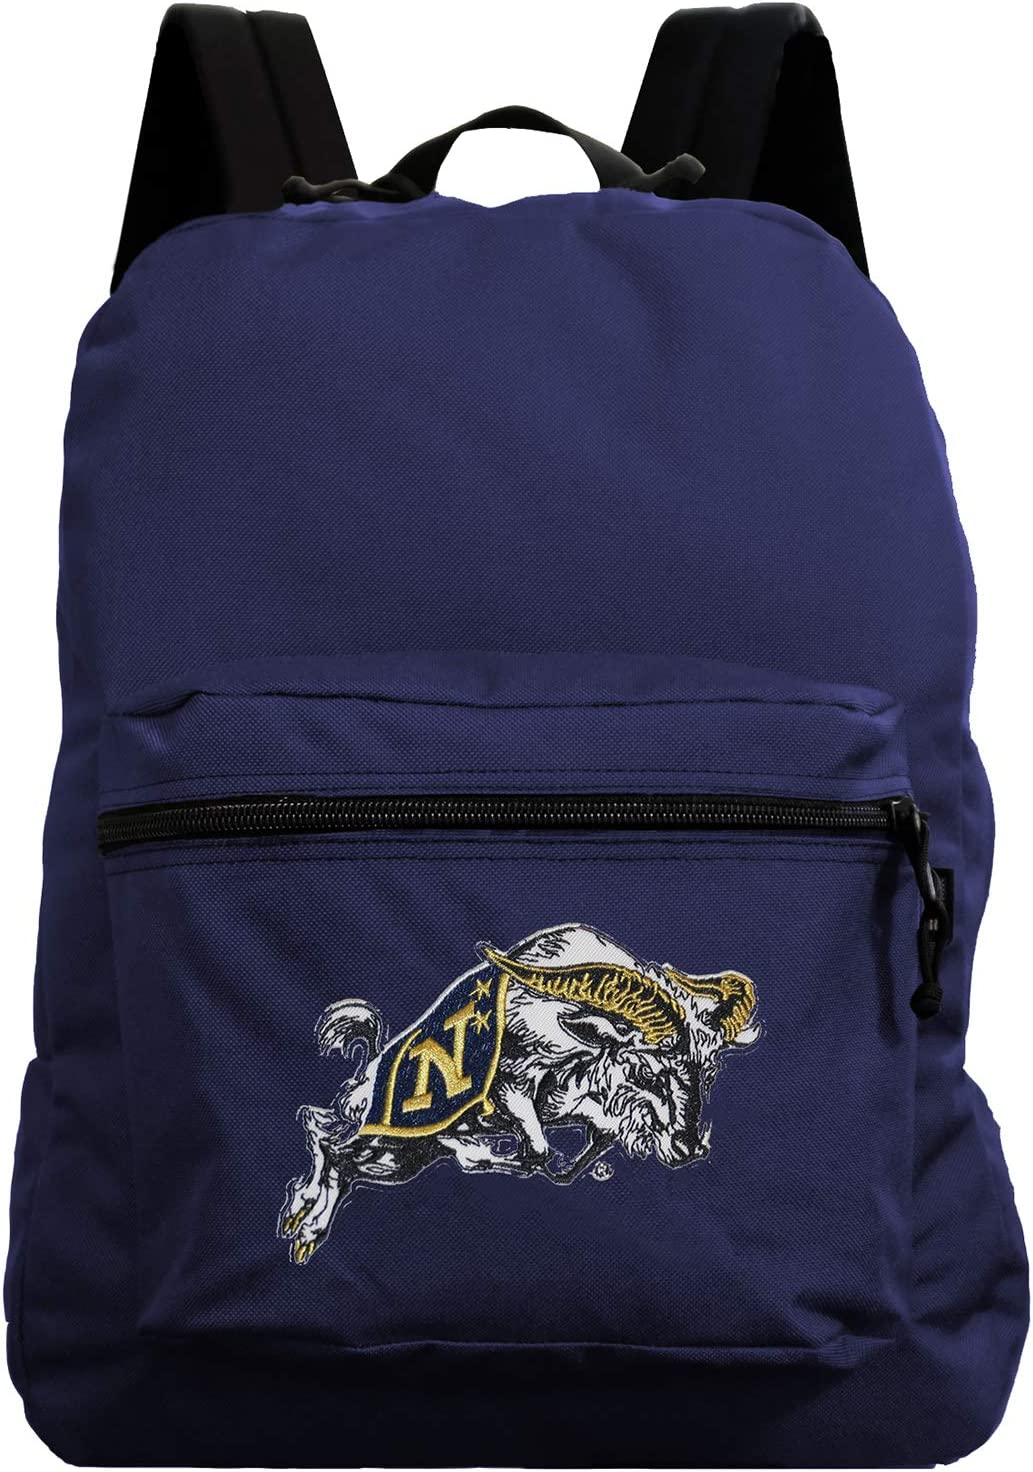 NCAA Made in The USA Premium Backpack,16-inches,Navy